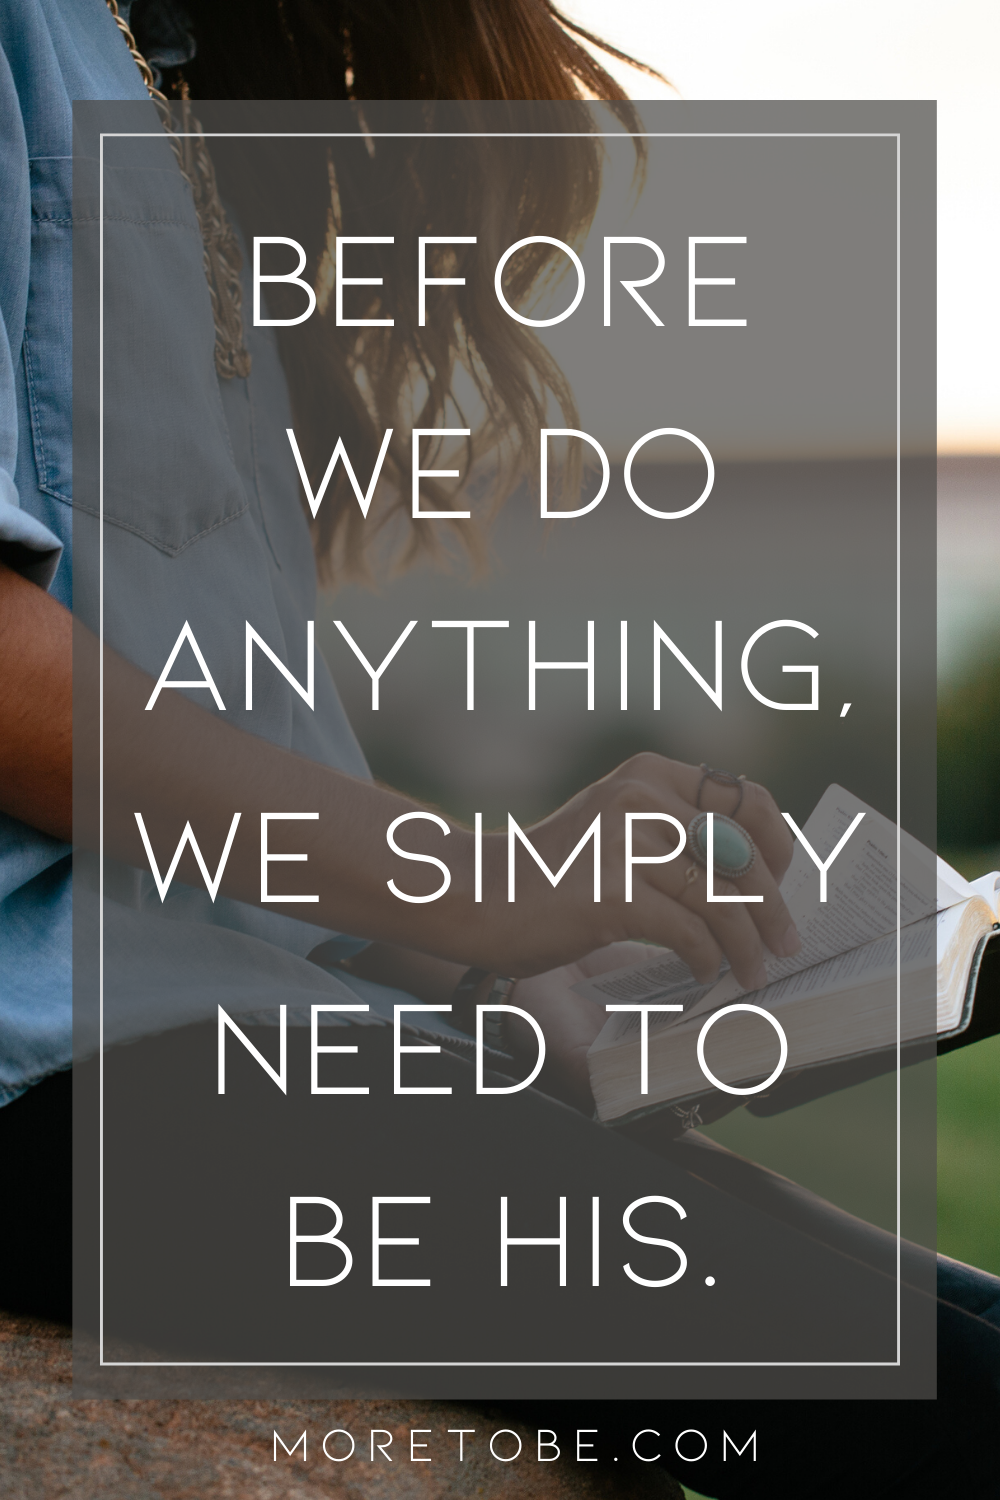 Before we do anything, we simply need to be His.